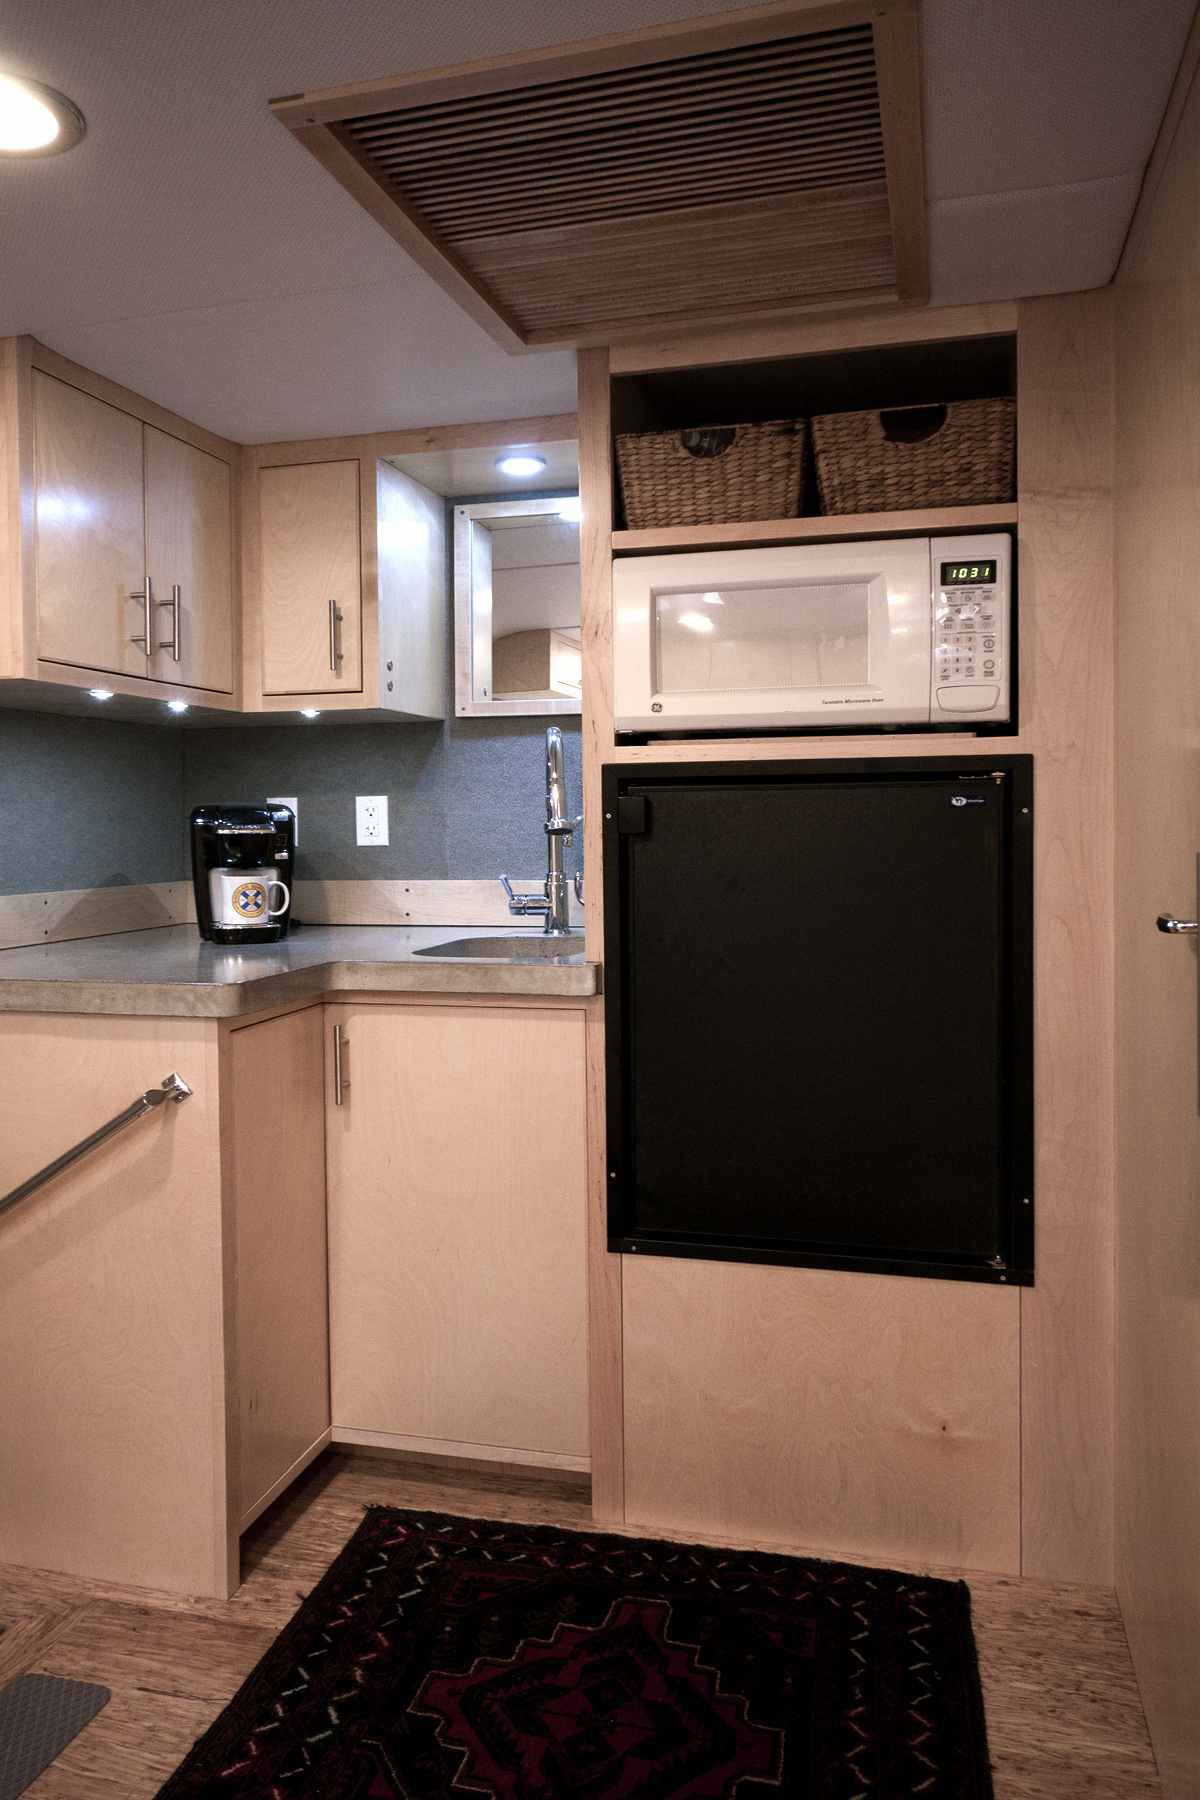 Kitchenette with counter, oven, and microwave